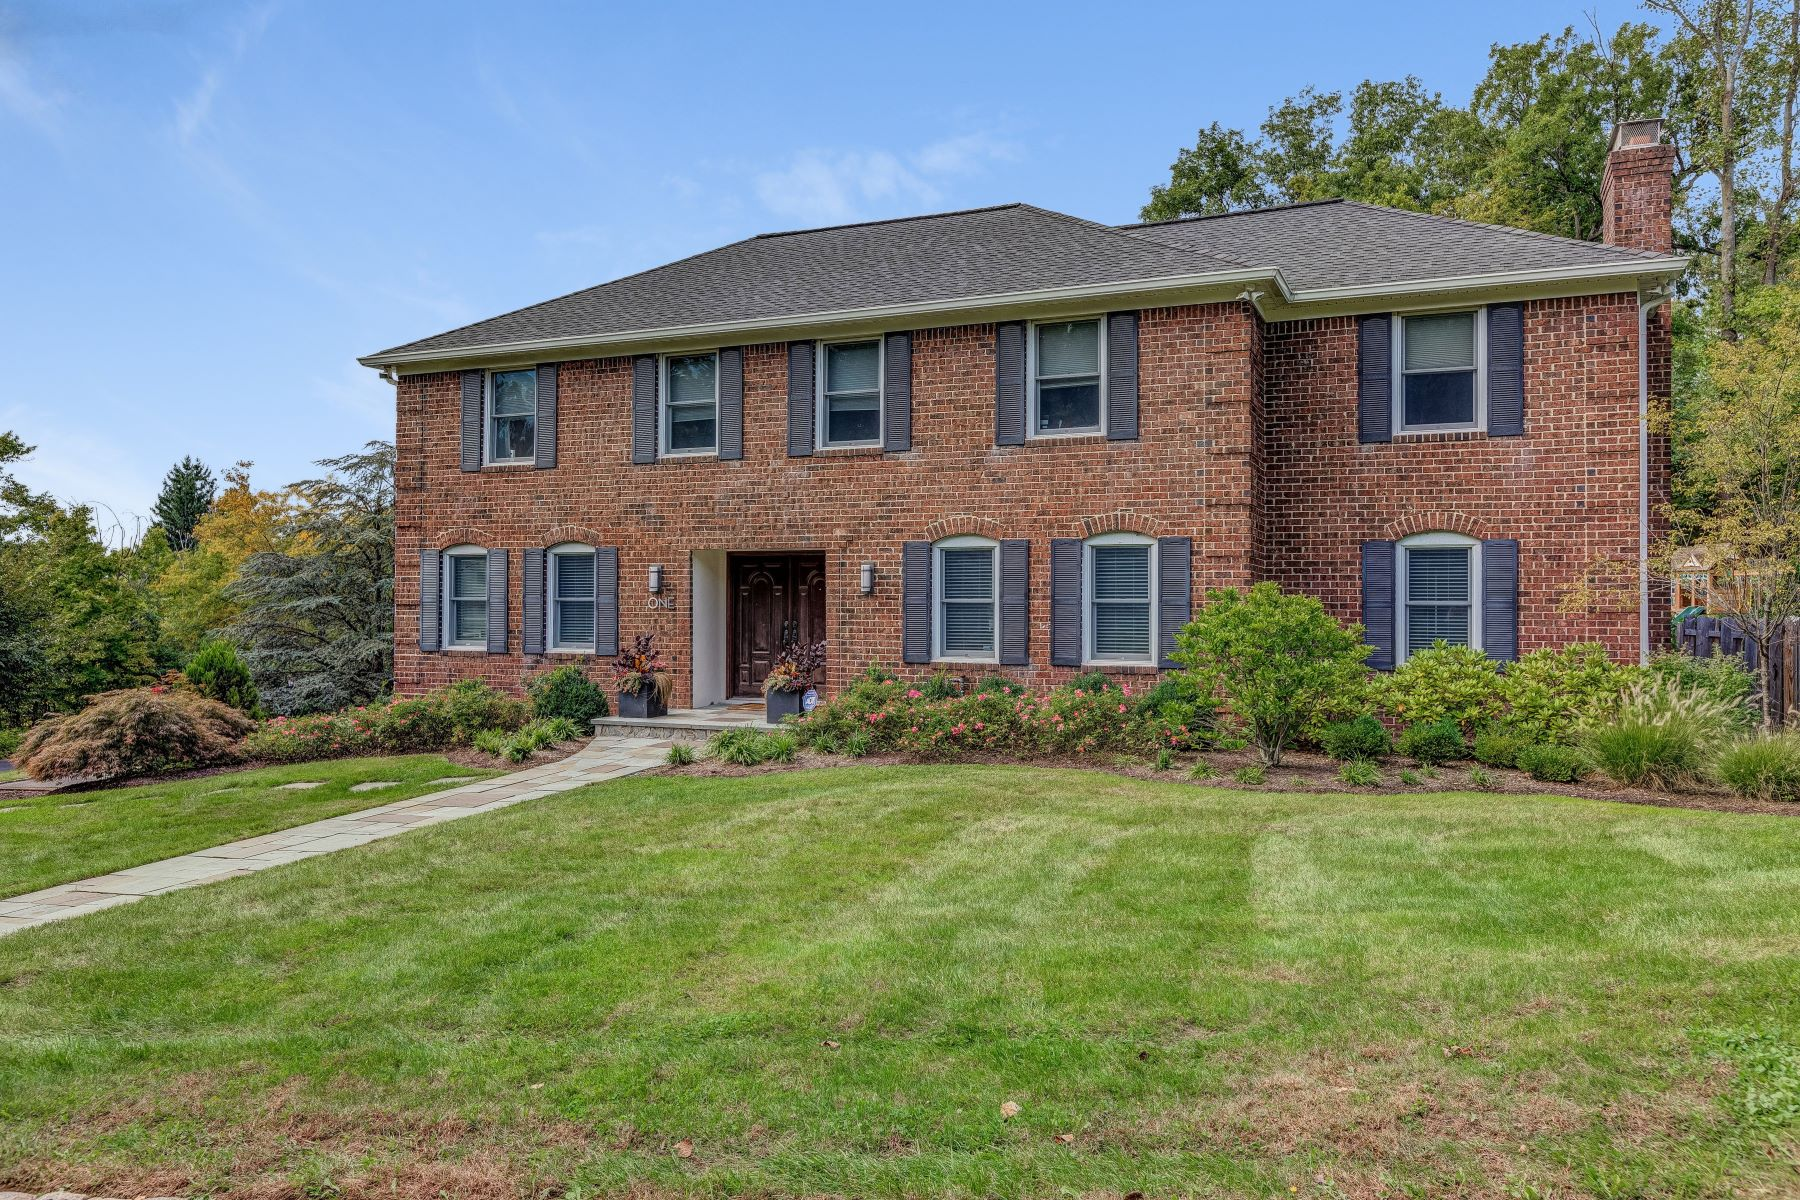 Single Family Home for Sale at Impeccable Colonial 1 Bruce Path, Short Hills, New Jersey 07078 United States